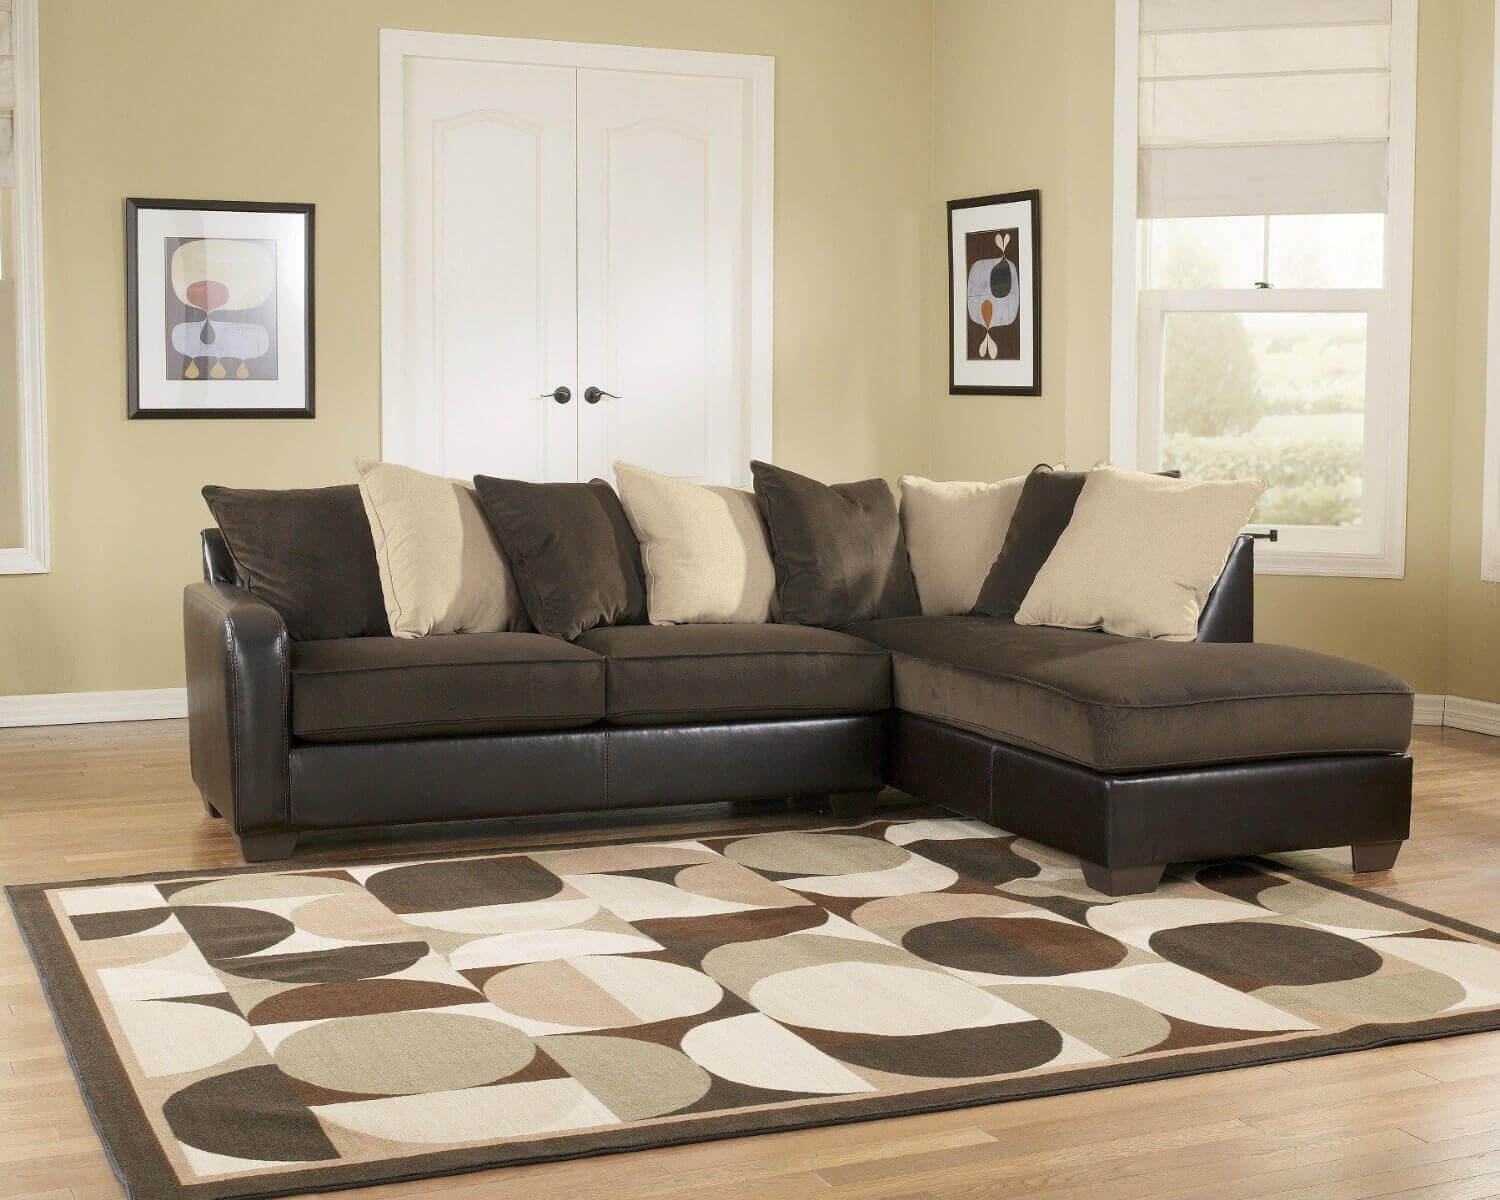 design affordable small sofa and gray photograph sofas scale ideas of sectional home grobania unique